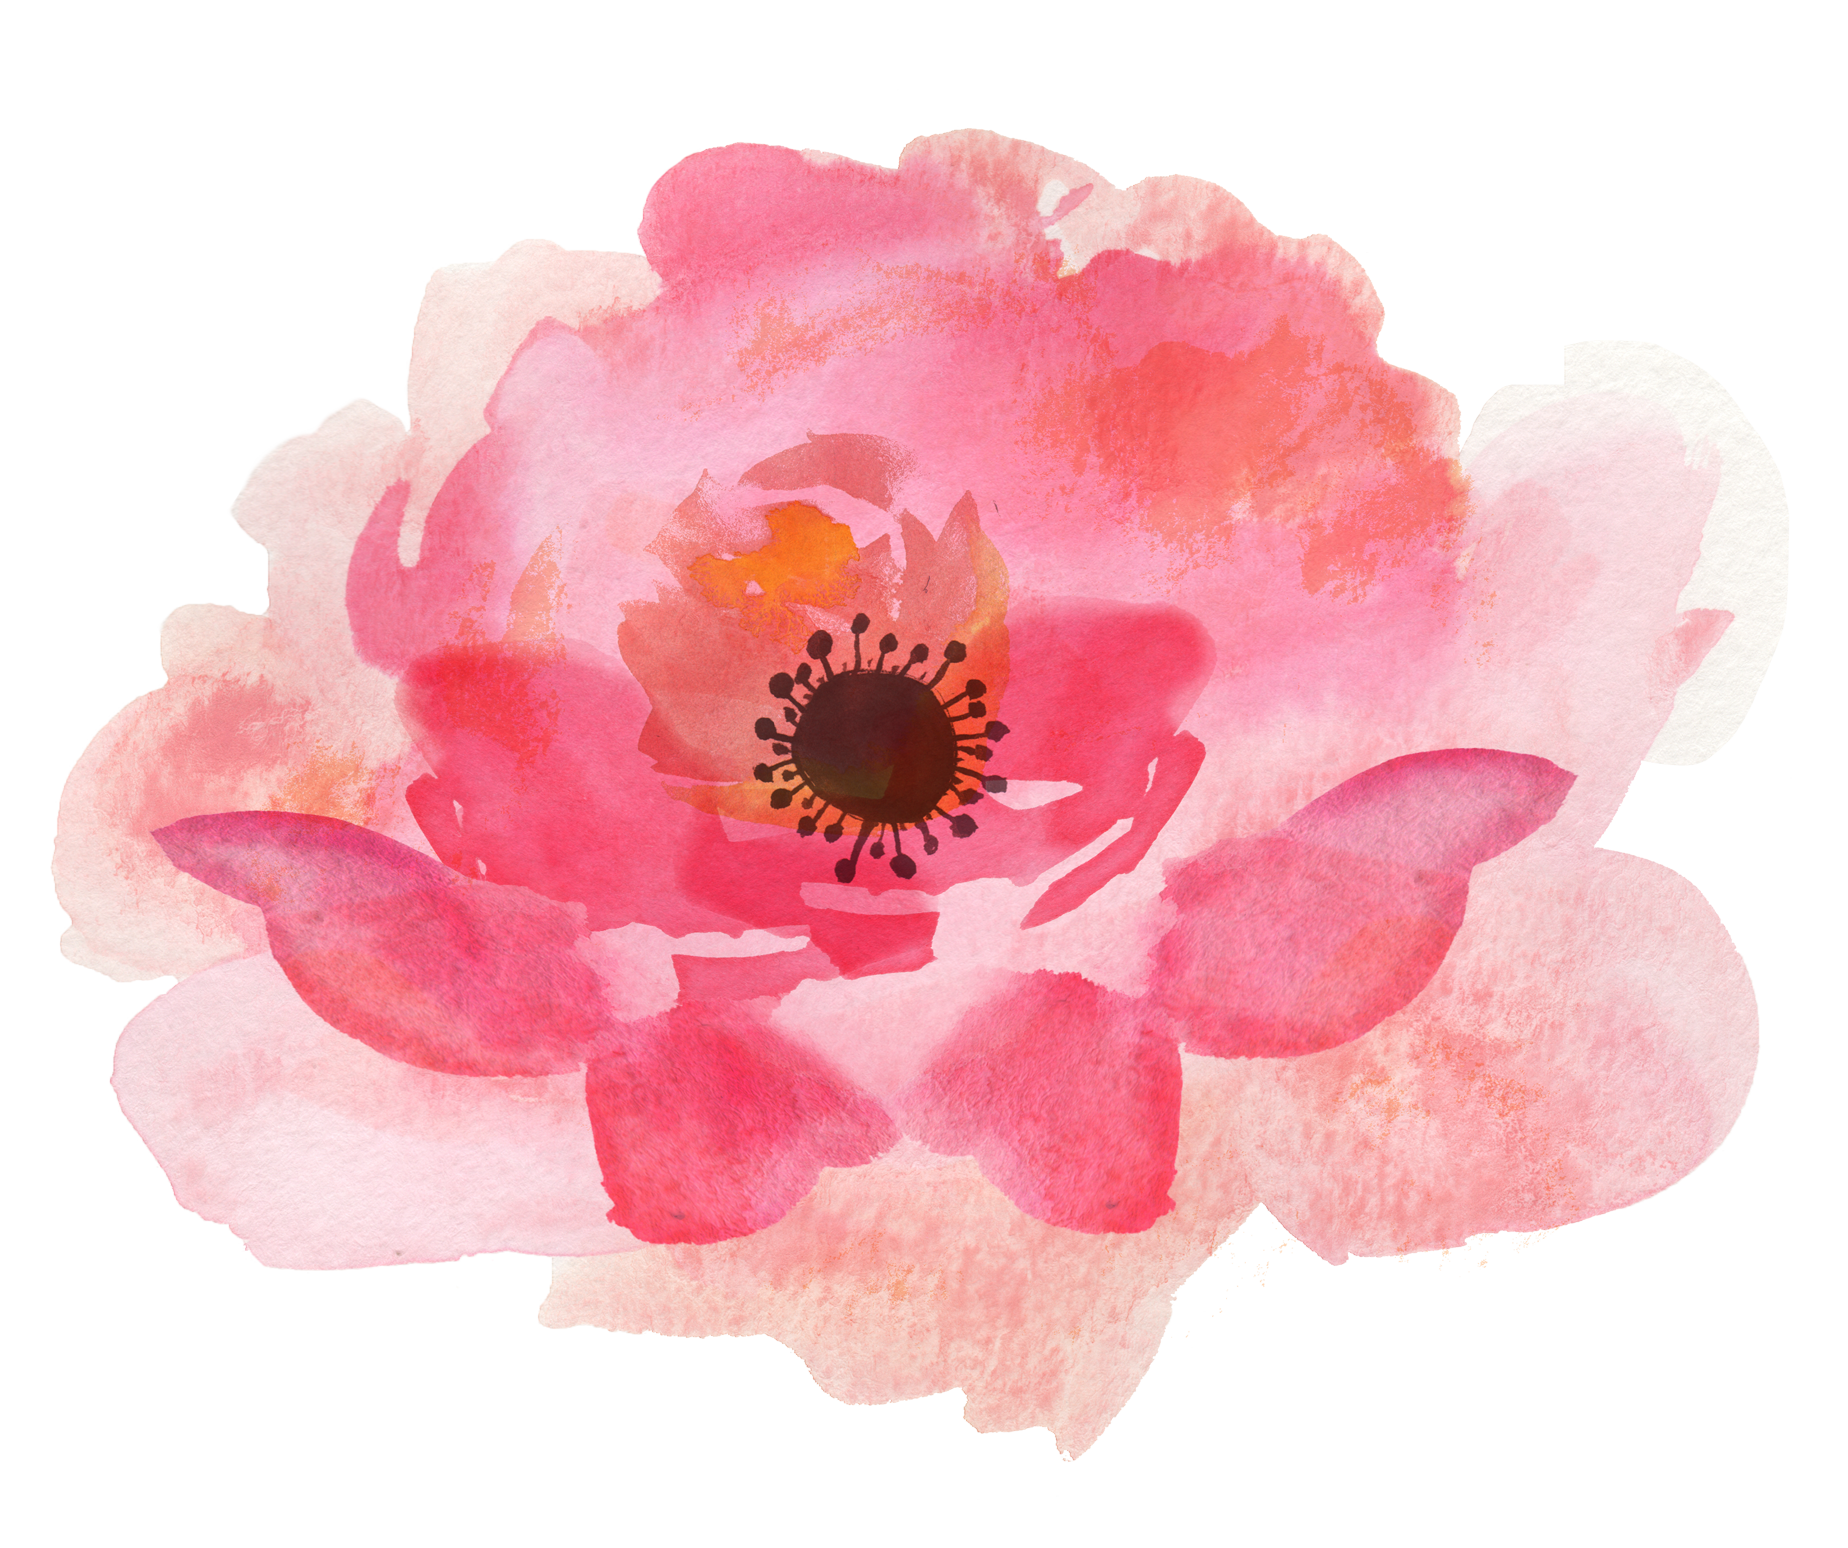 Pink watercolor flower png. Flowers high quality free